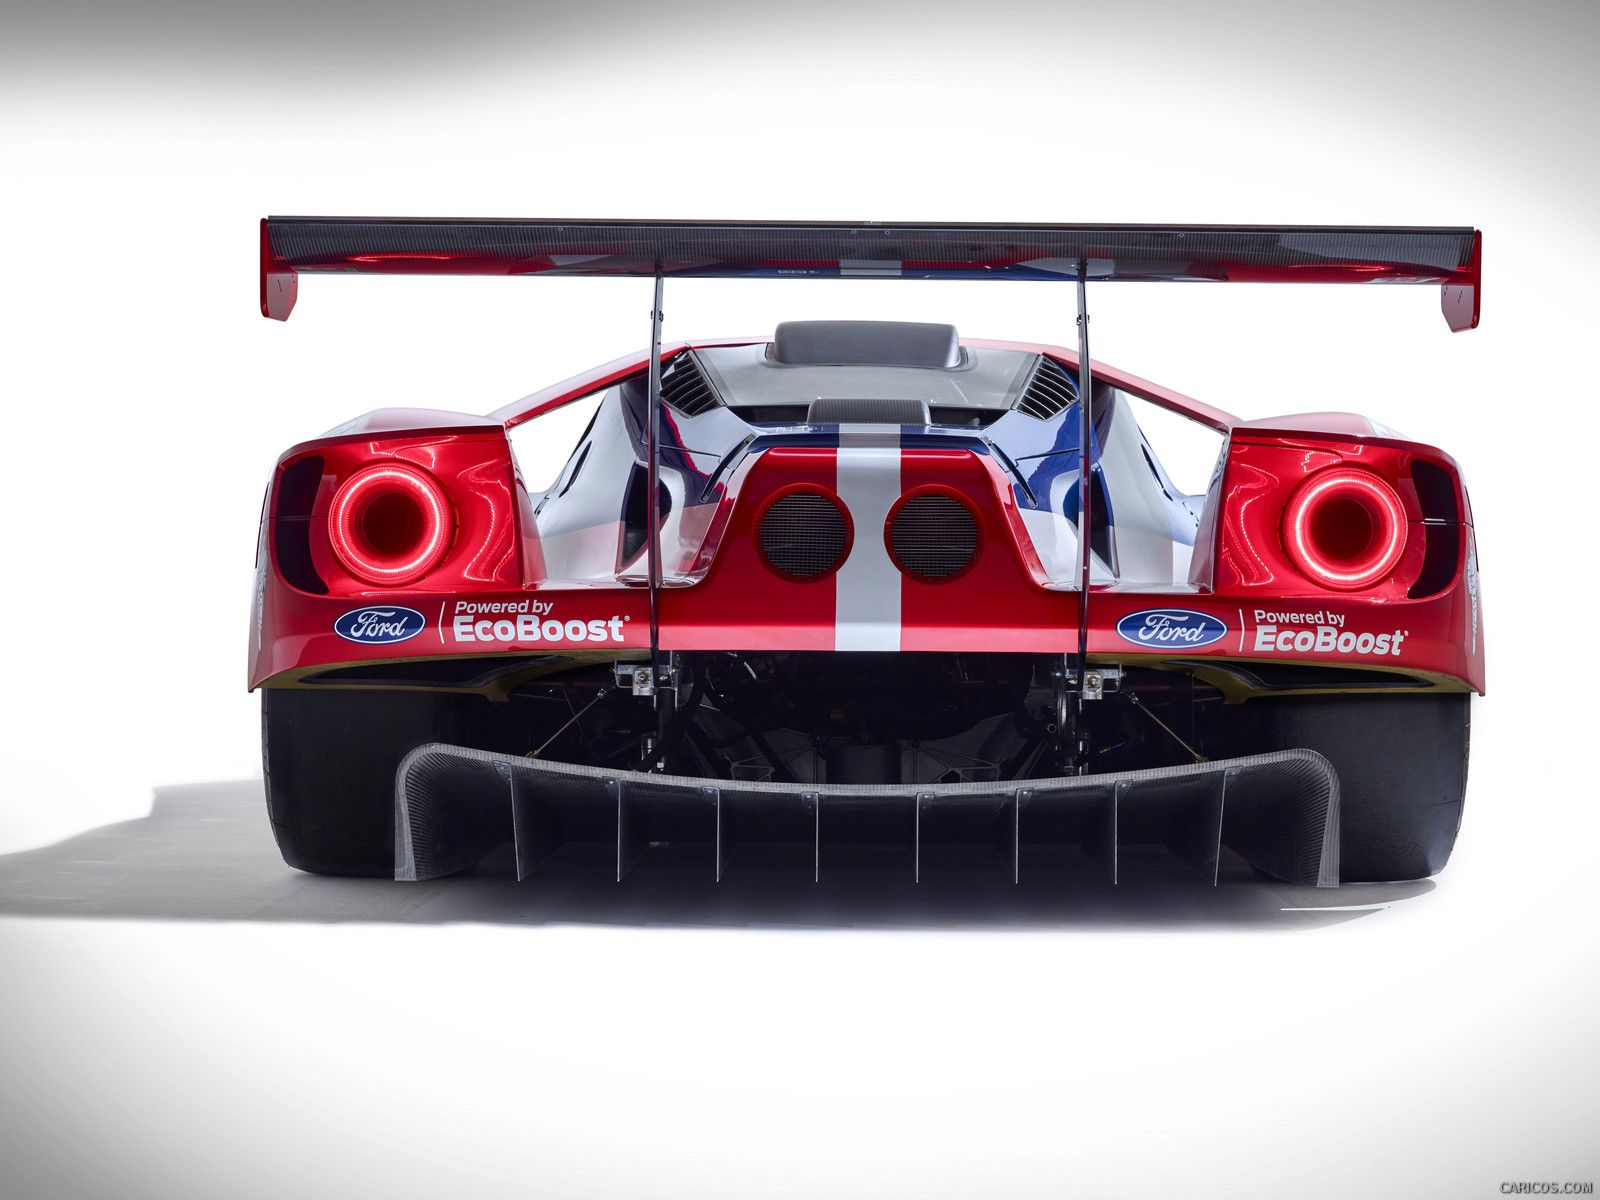 2016 Ford Gt Le Mans Race Car Wallpaper Ford Gt Ford Gt Le Mans Race Cars